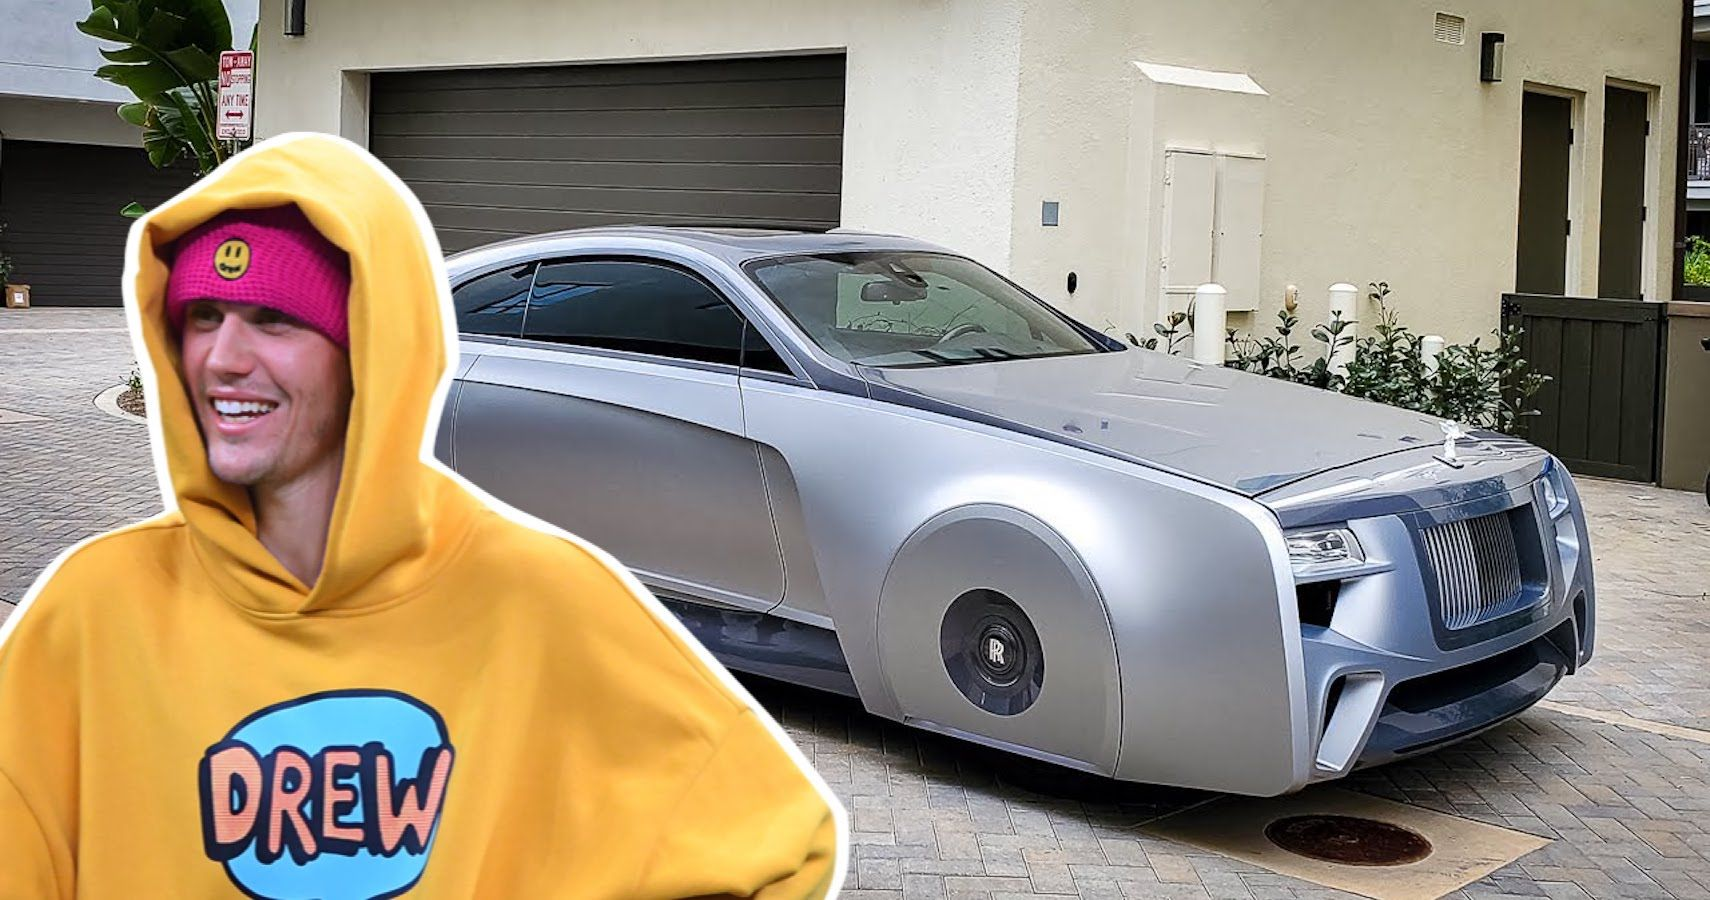 Justin Bieber's Floating Rolls-Royce Wraith Spotted By YouTuber